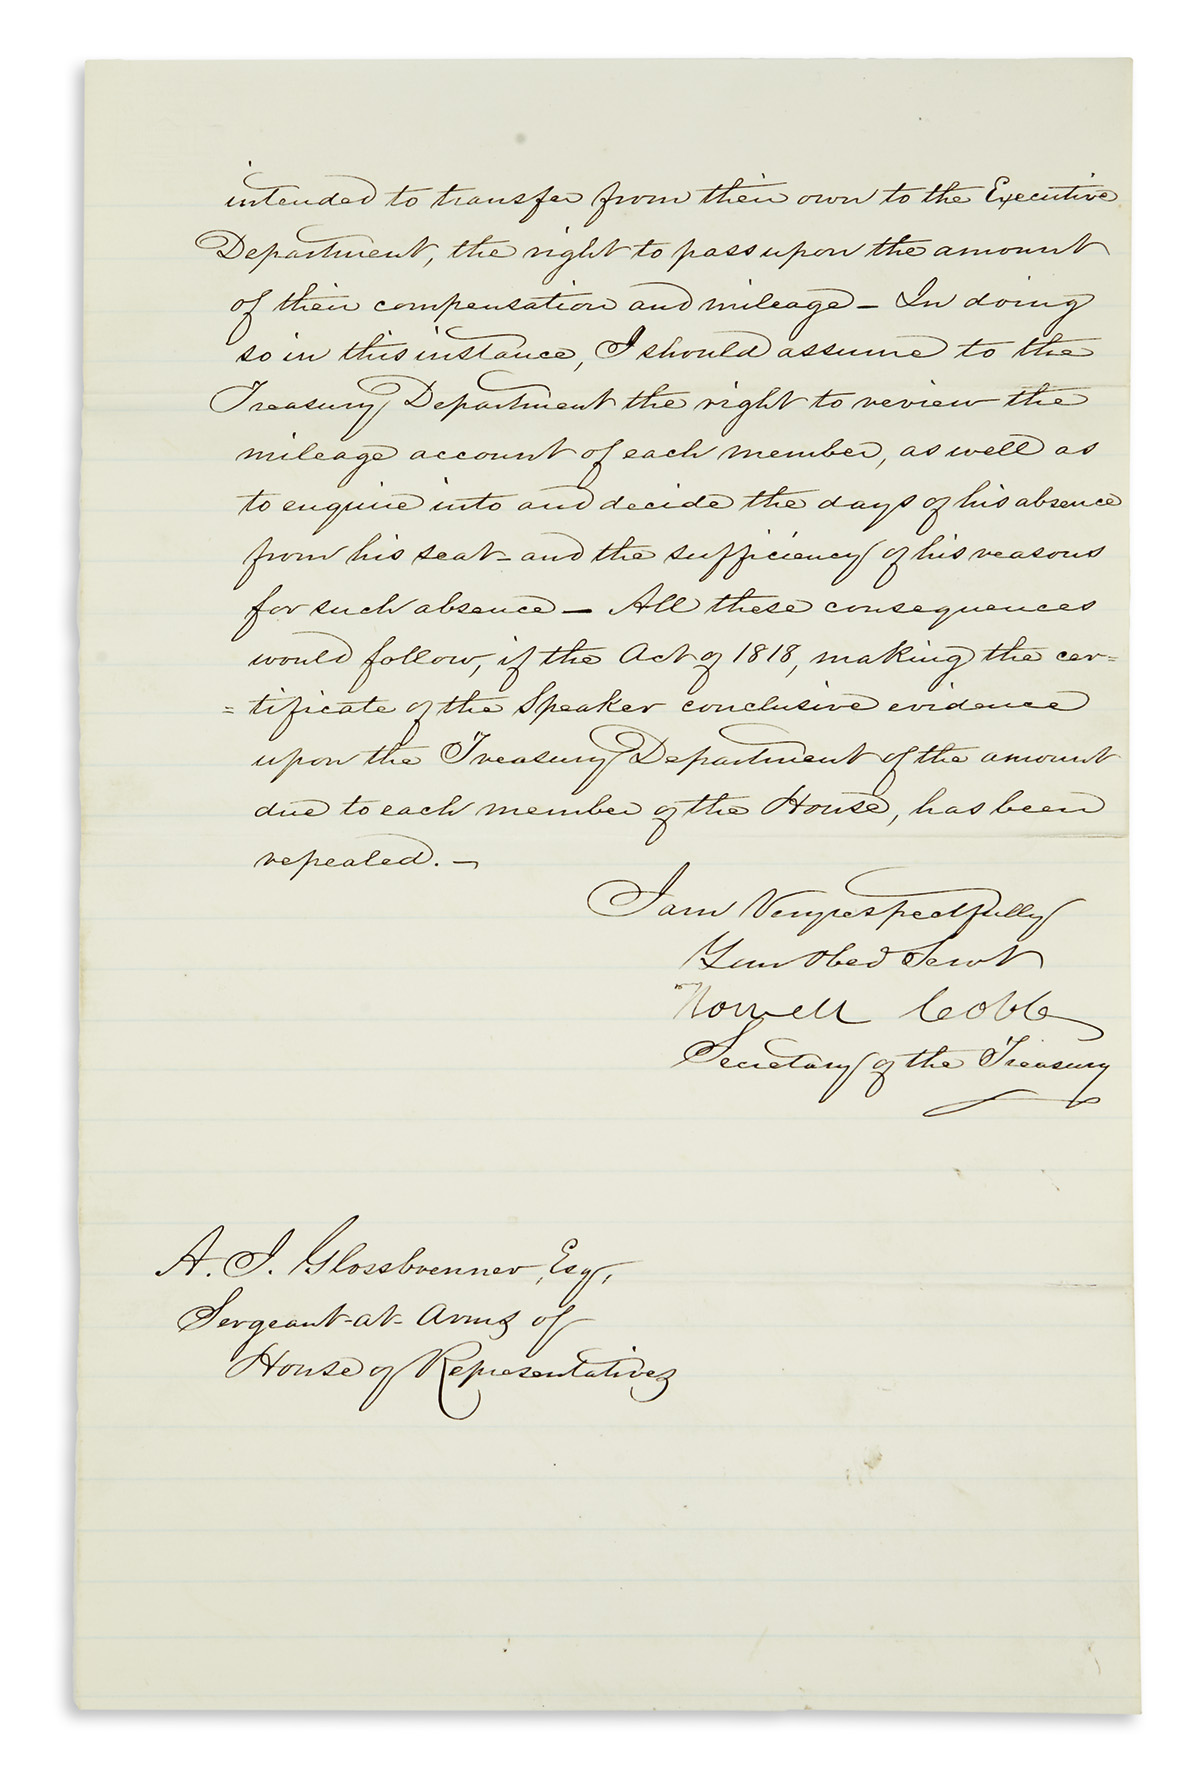 COBB-HOWELL-Letter-Signed-as-Secretary-of-the-Treasury-to-Se